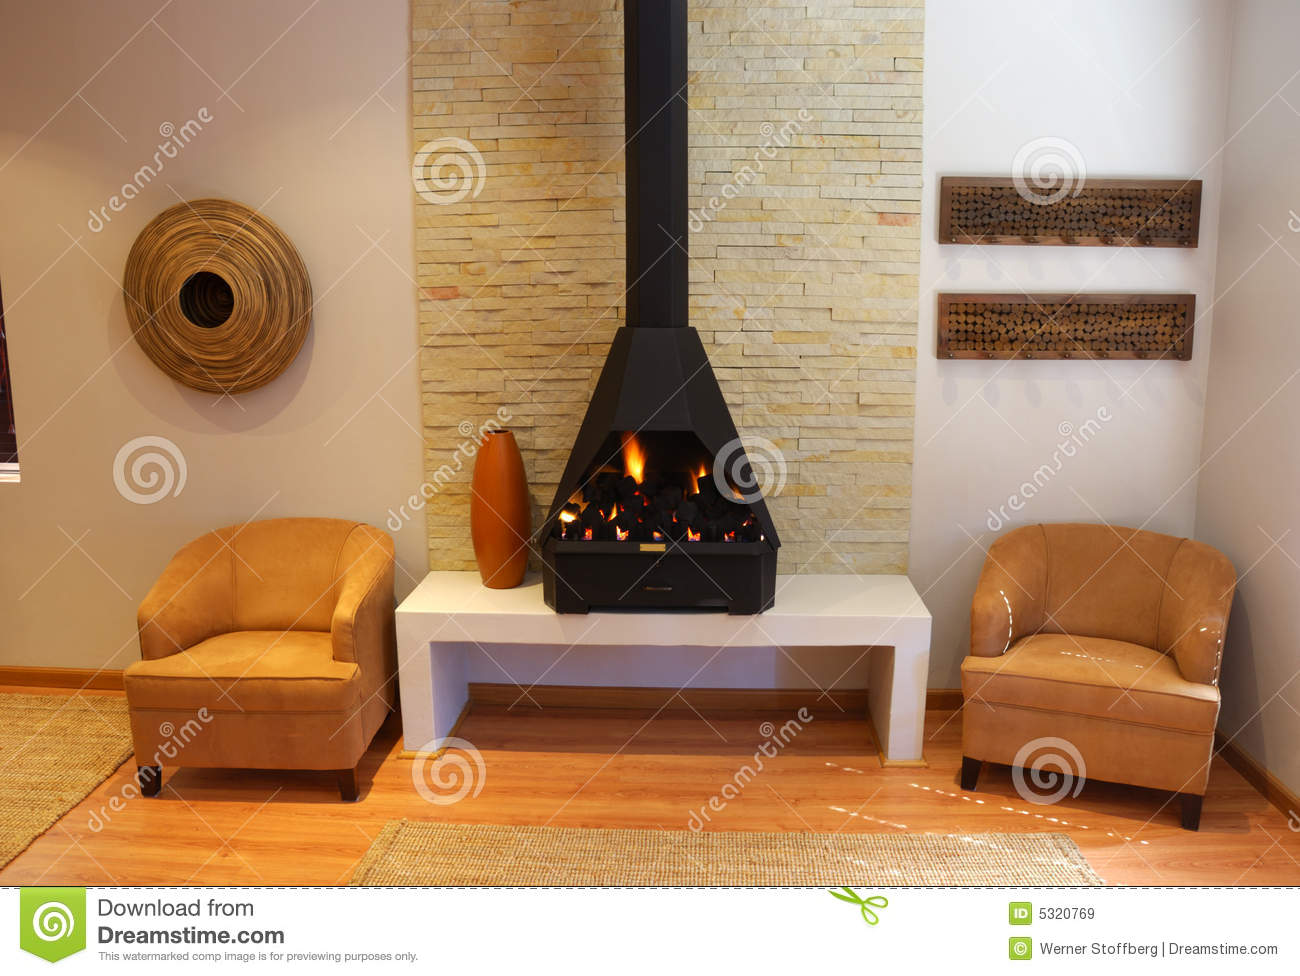 Download Living Room with Fireplace stock image. Image of image - 5320769